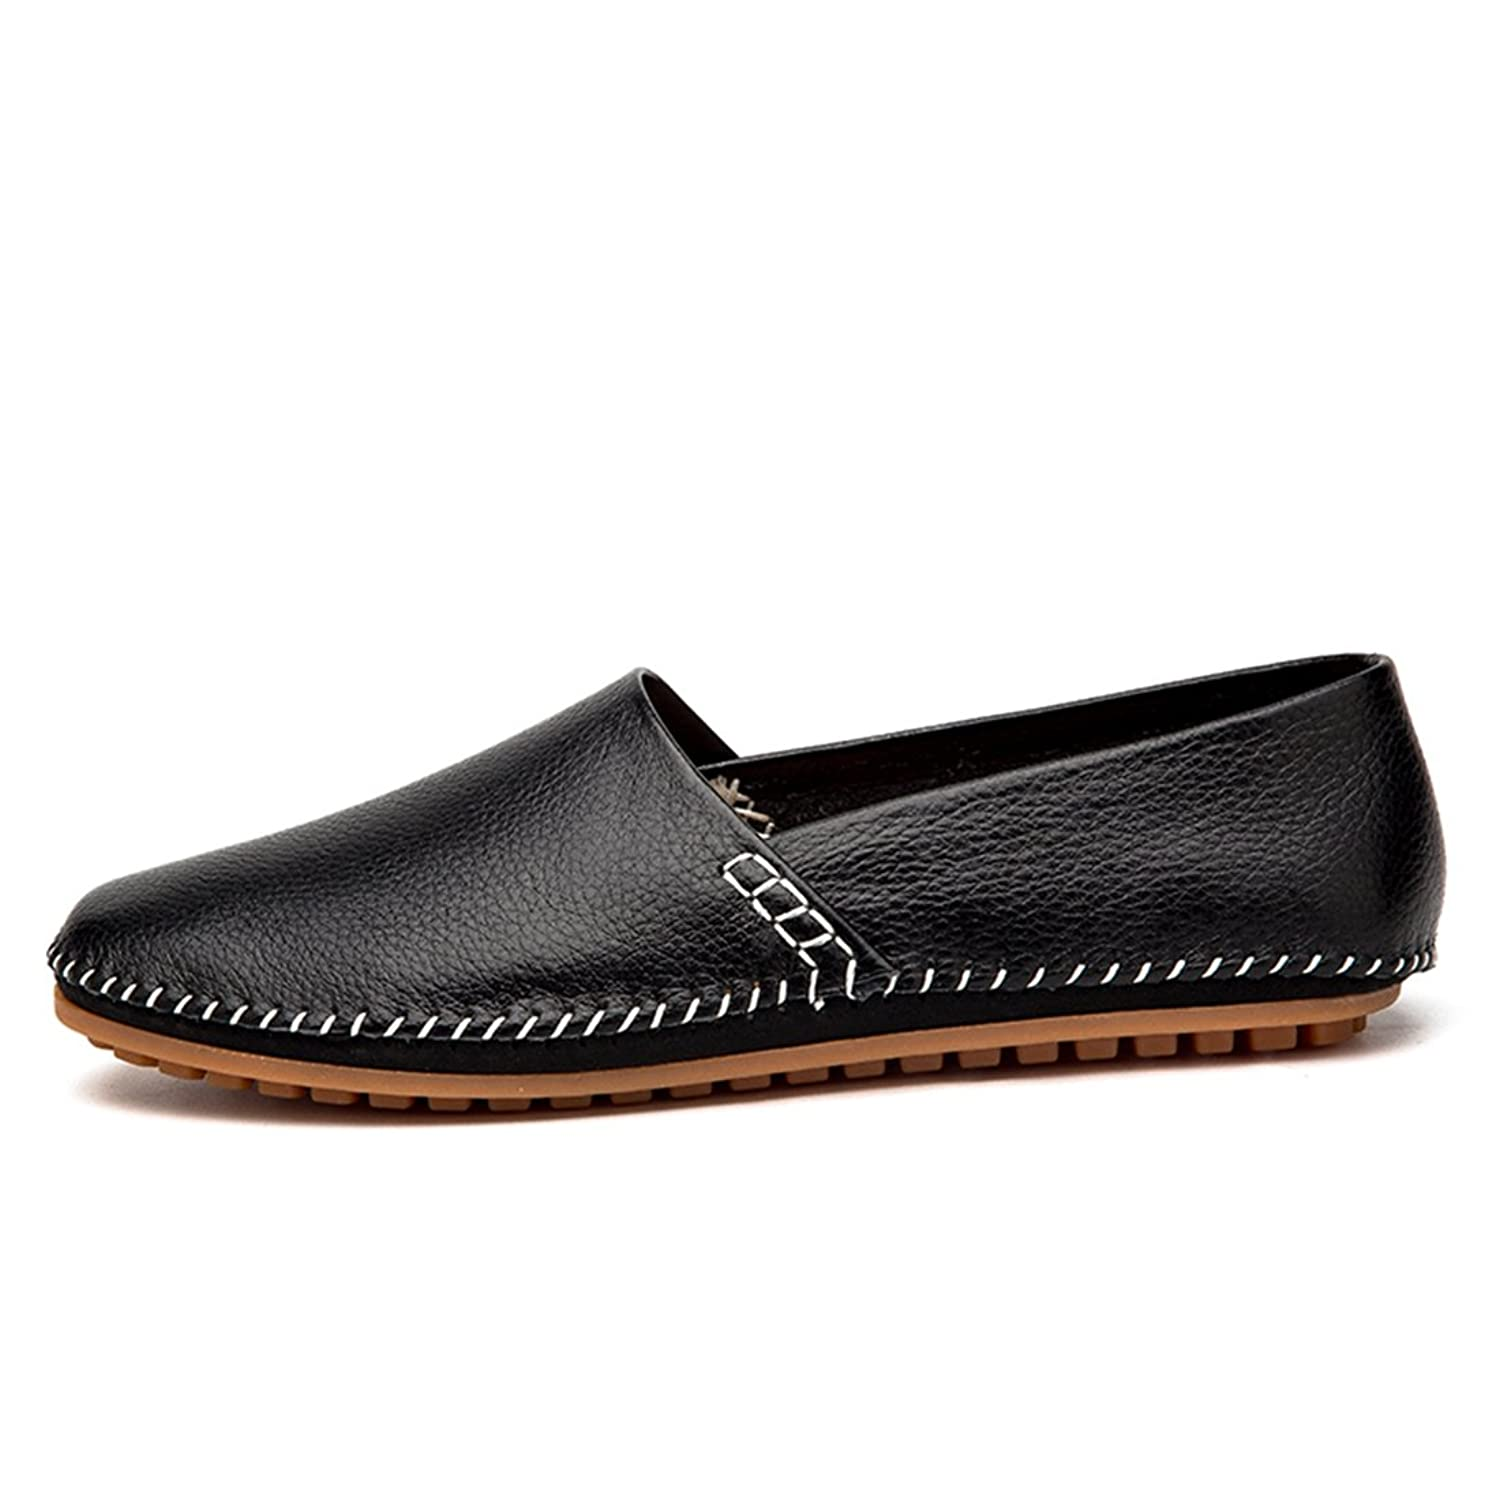 Boy's Men's Slip On Stitched Comfortable Spring/Summer Loafers